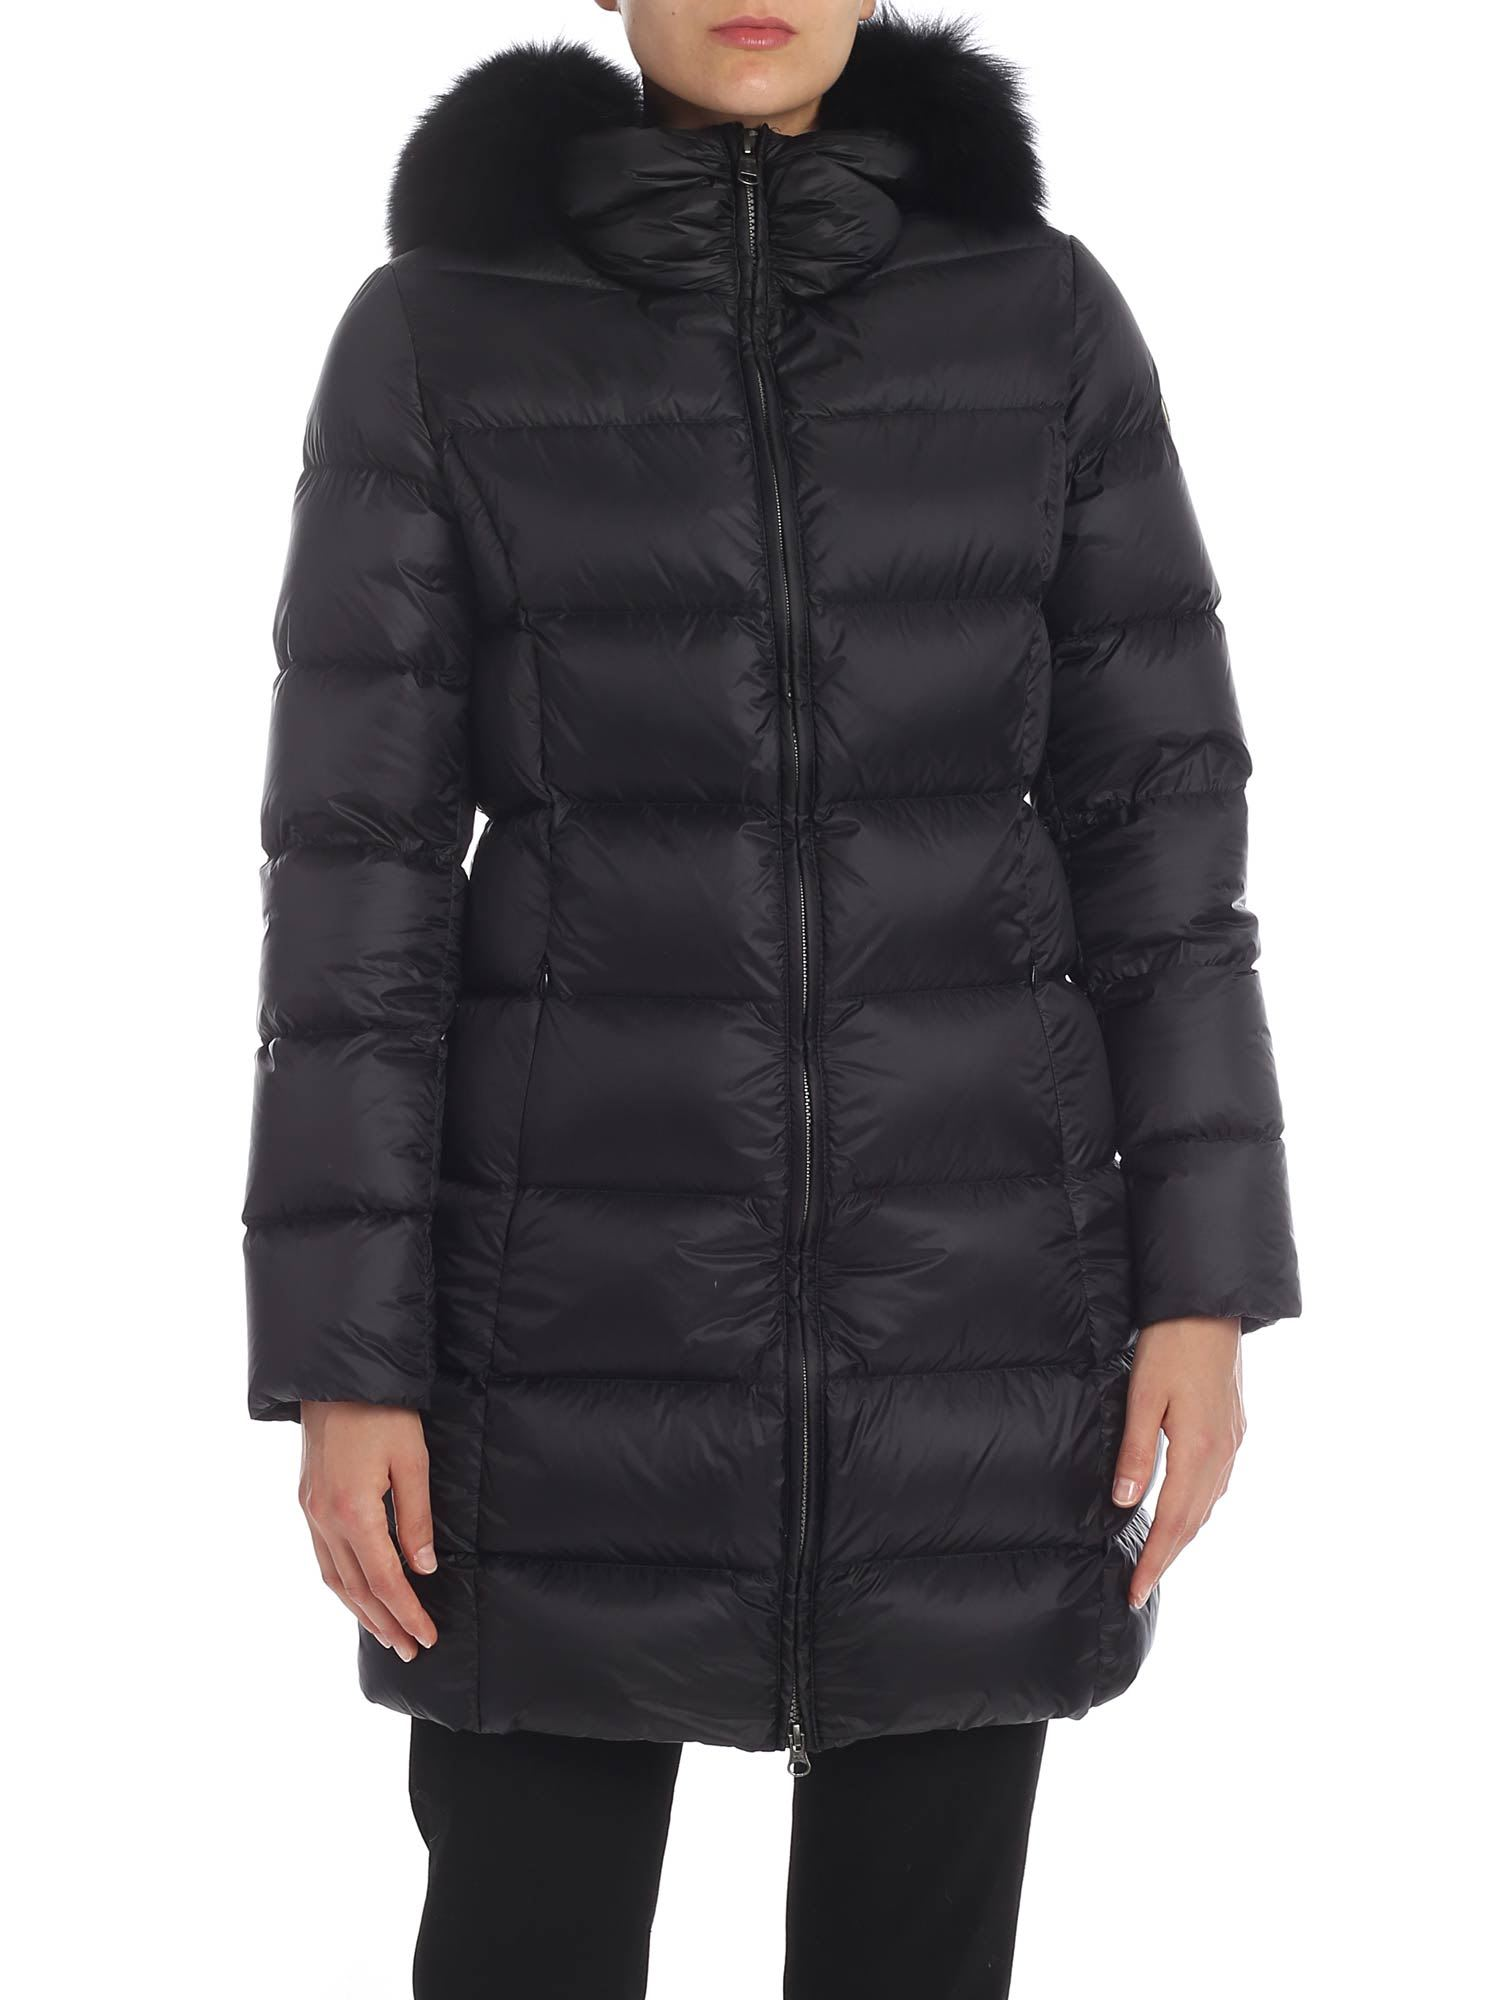 Colmar Nylon Down Jacket With Fur Insert